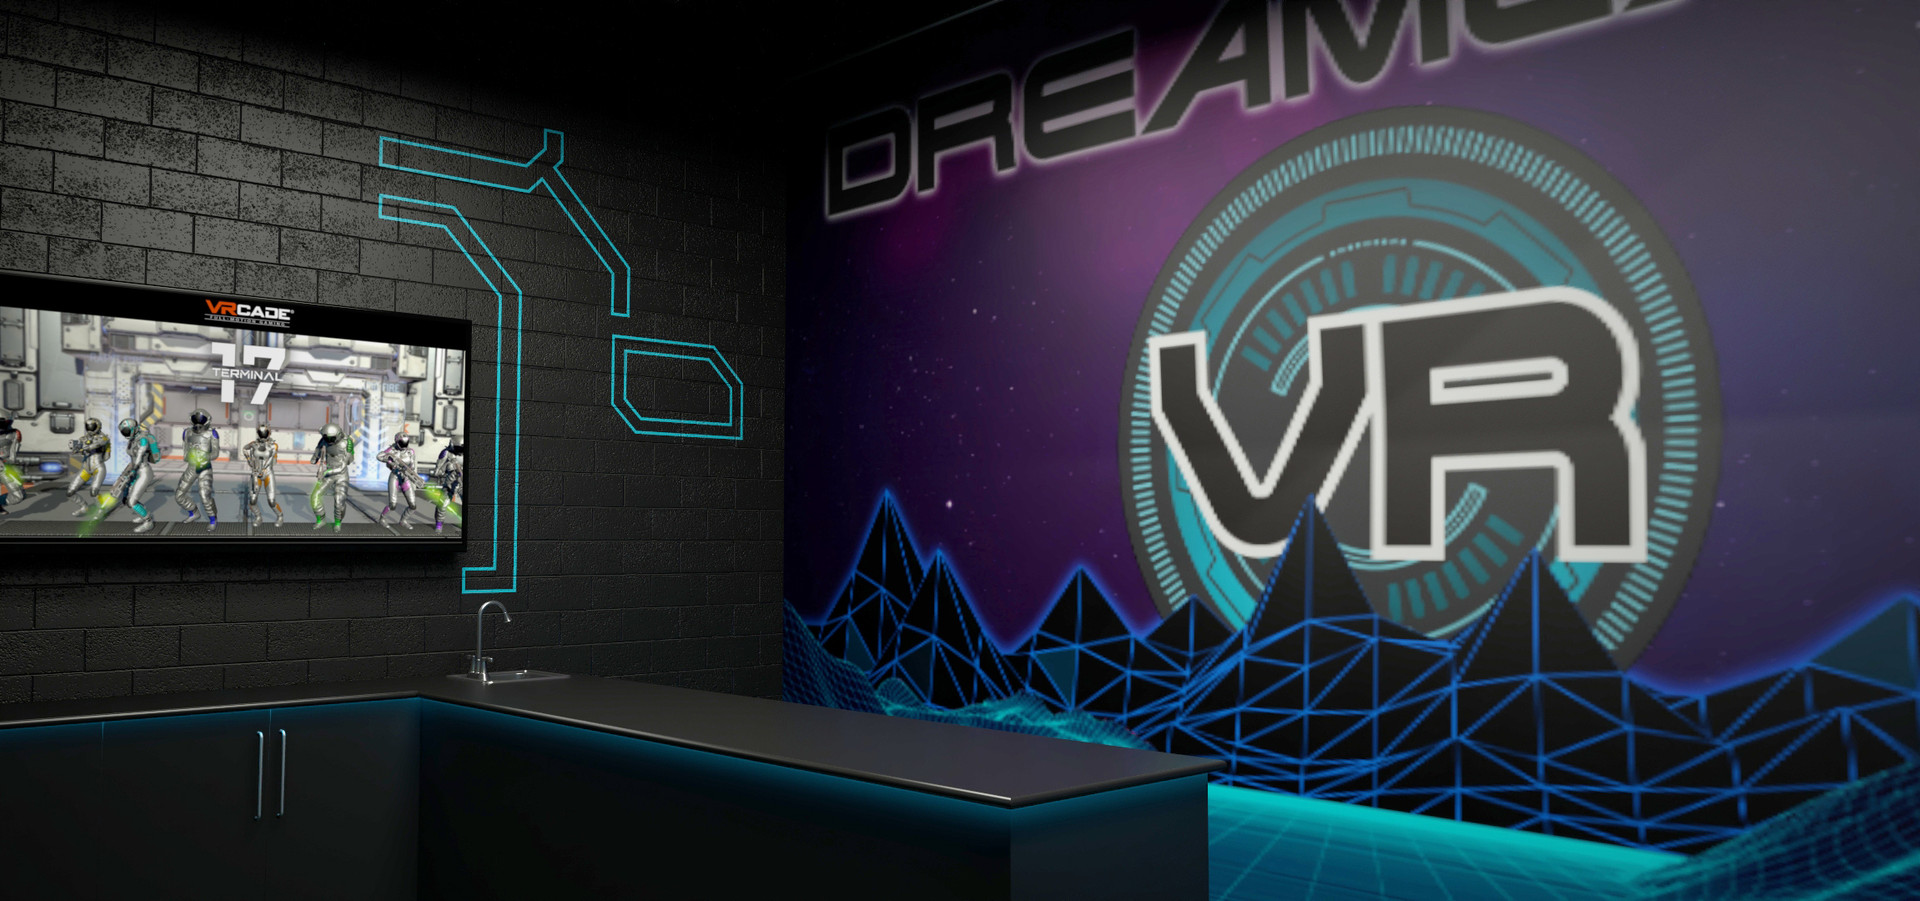 Dreamland Vr - Proposed Expansion